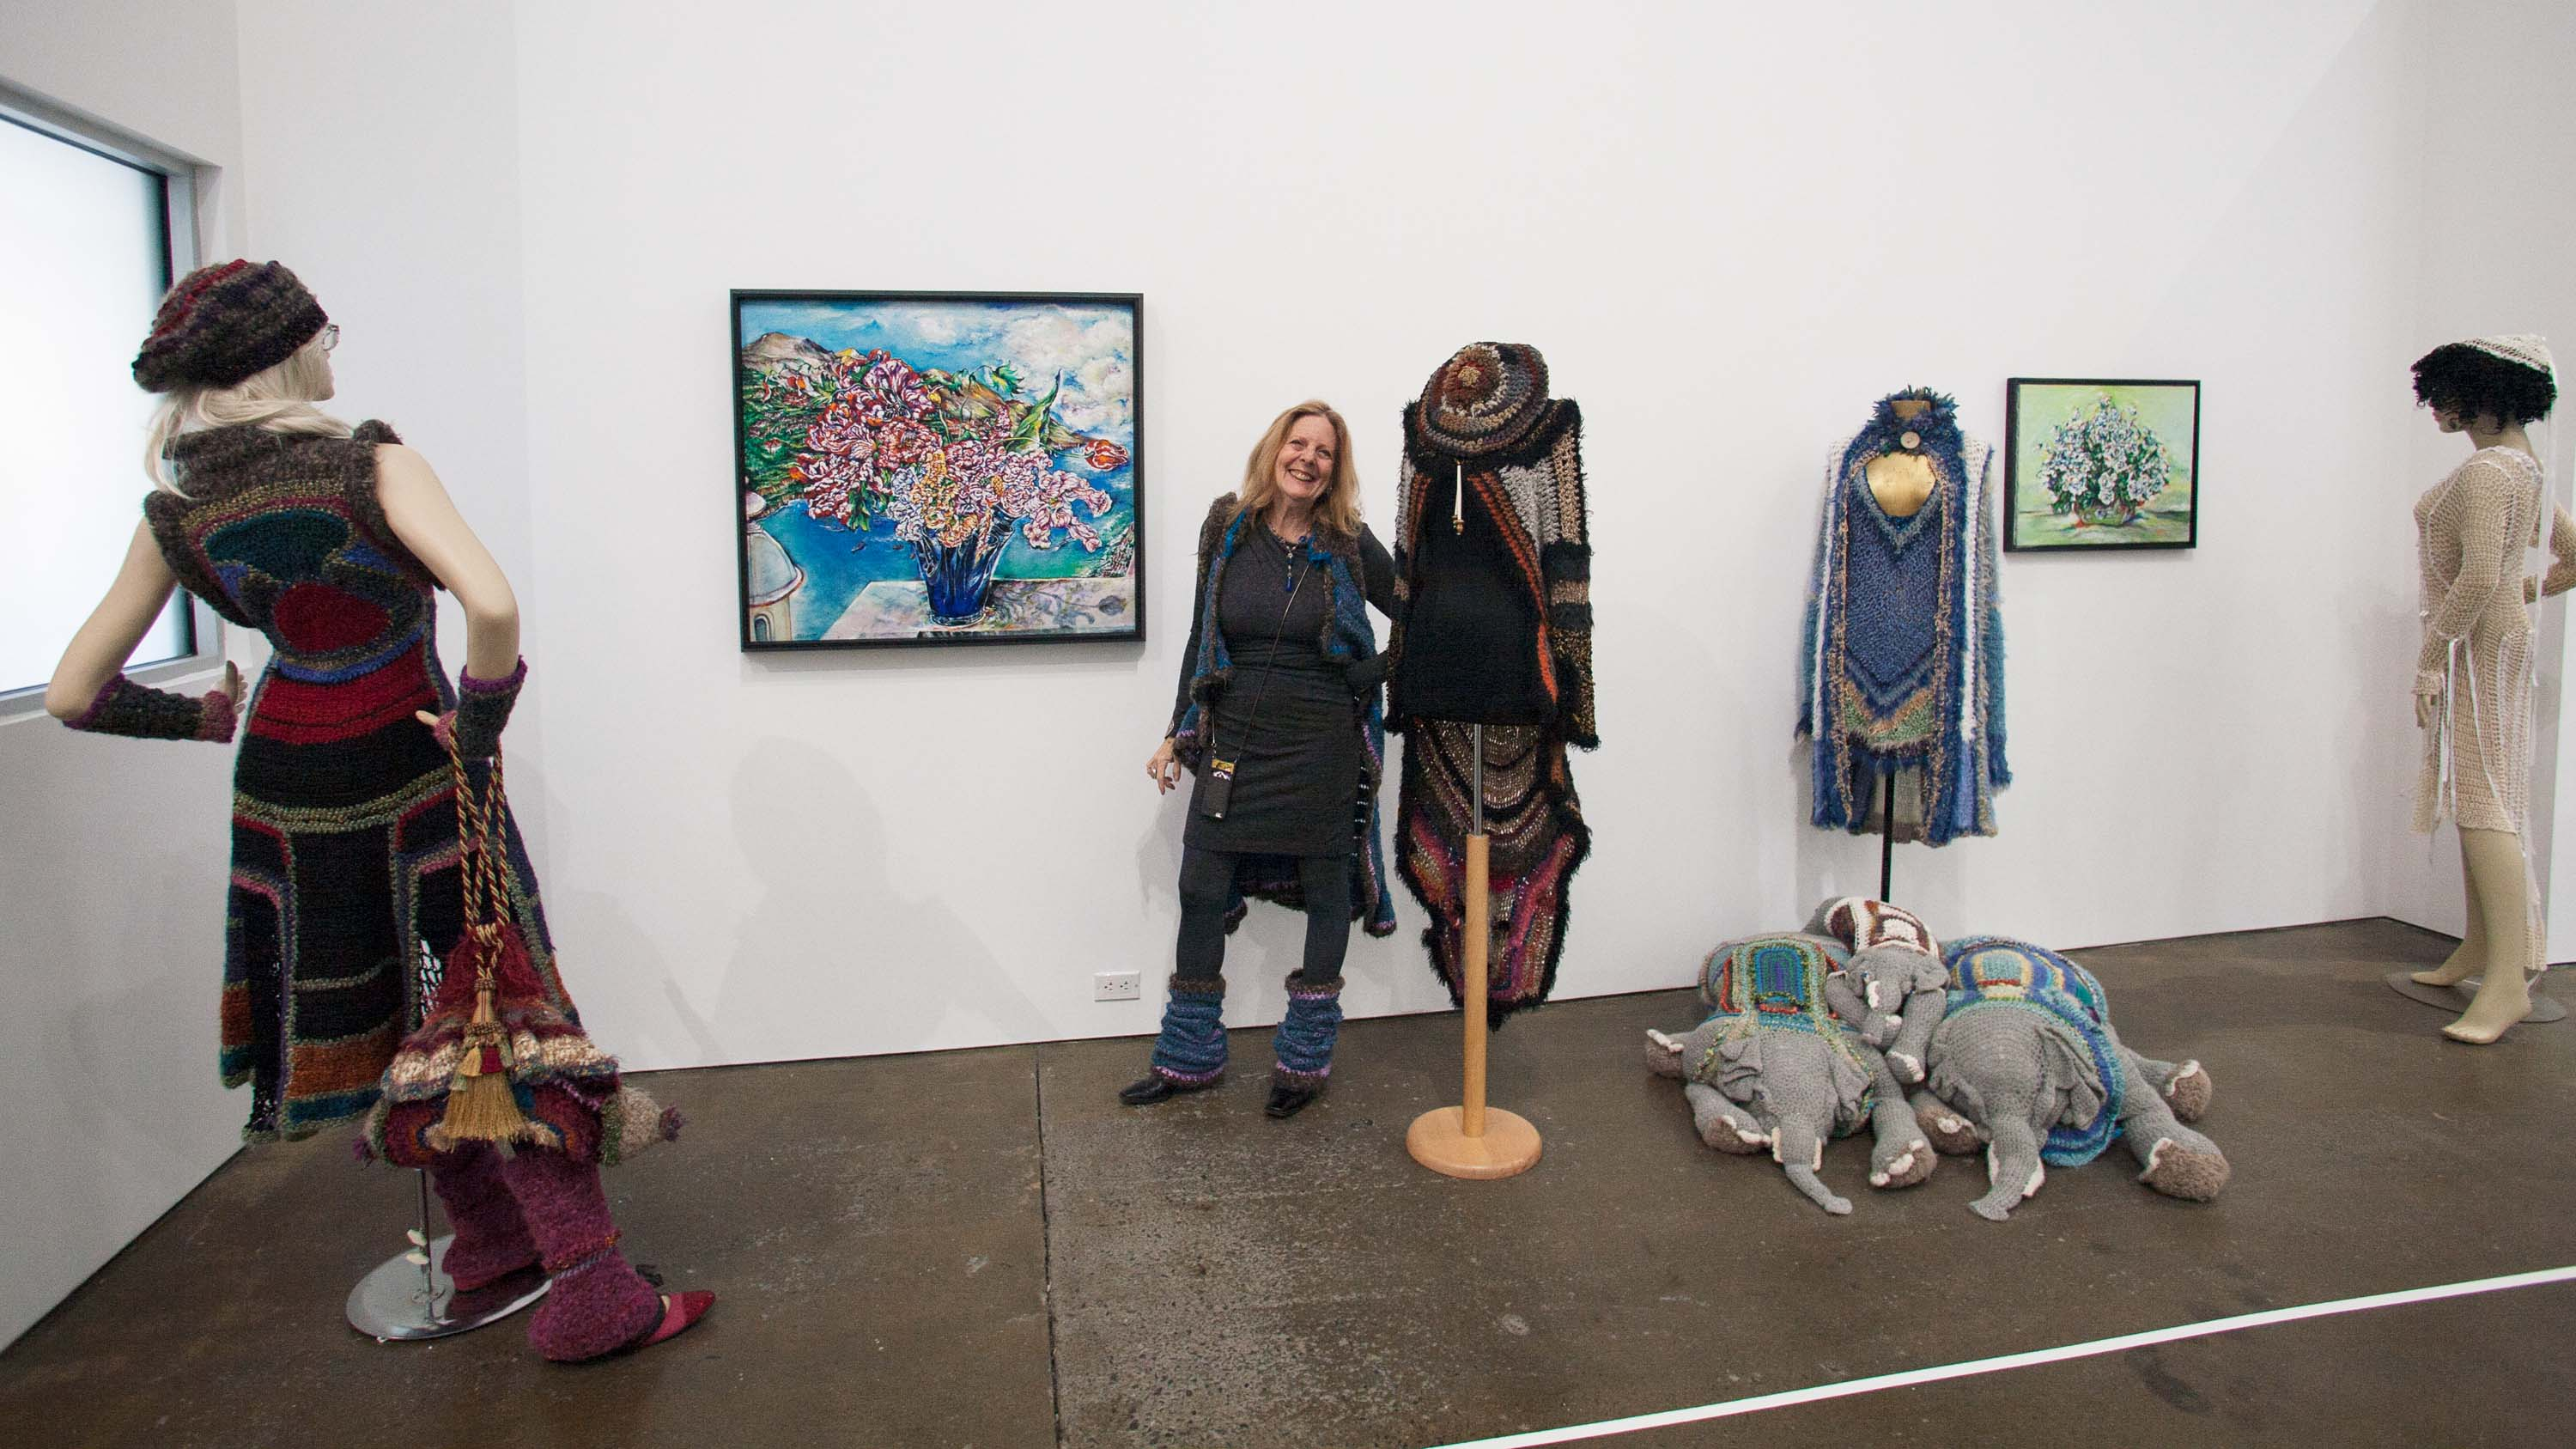 Susan Obrant with her Installation, Photo by Bibiana Mattheis